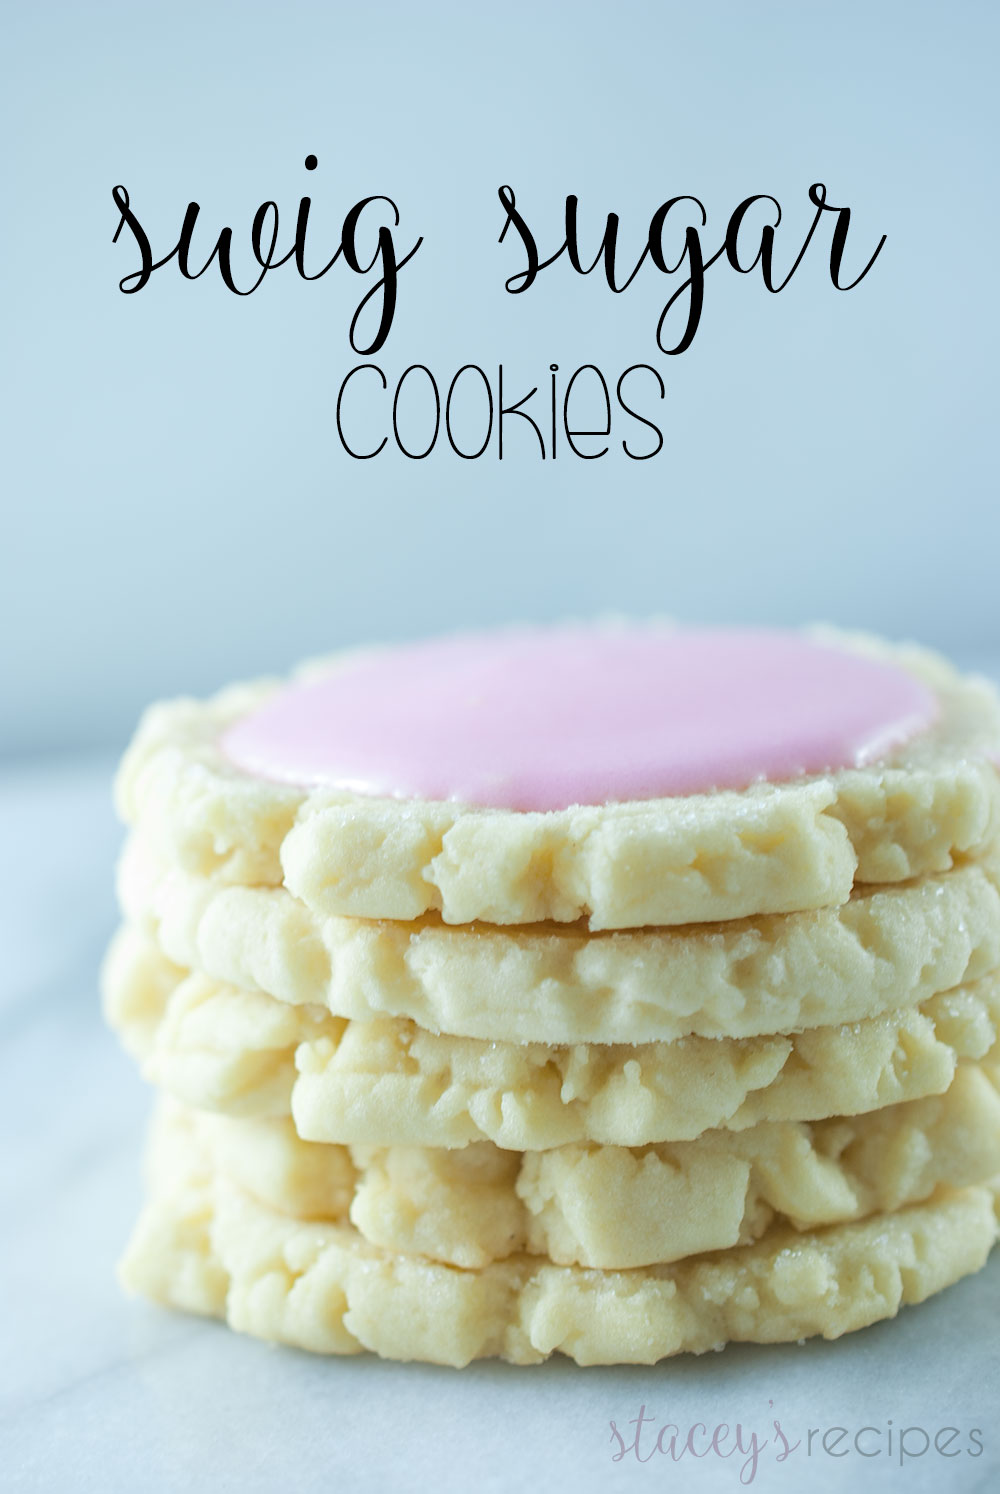 Swig Sugar Cookies - The perfect combination of a sugar cookie and shortbread, smothered with a sour cream frosting. | www.staceysrecipes.com